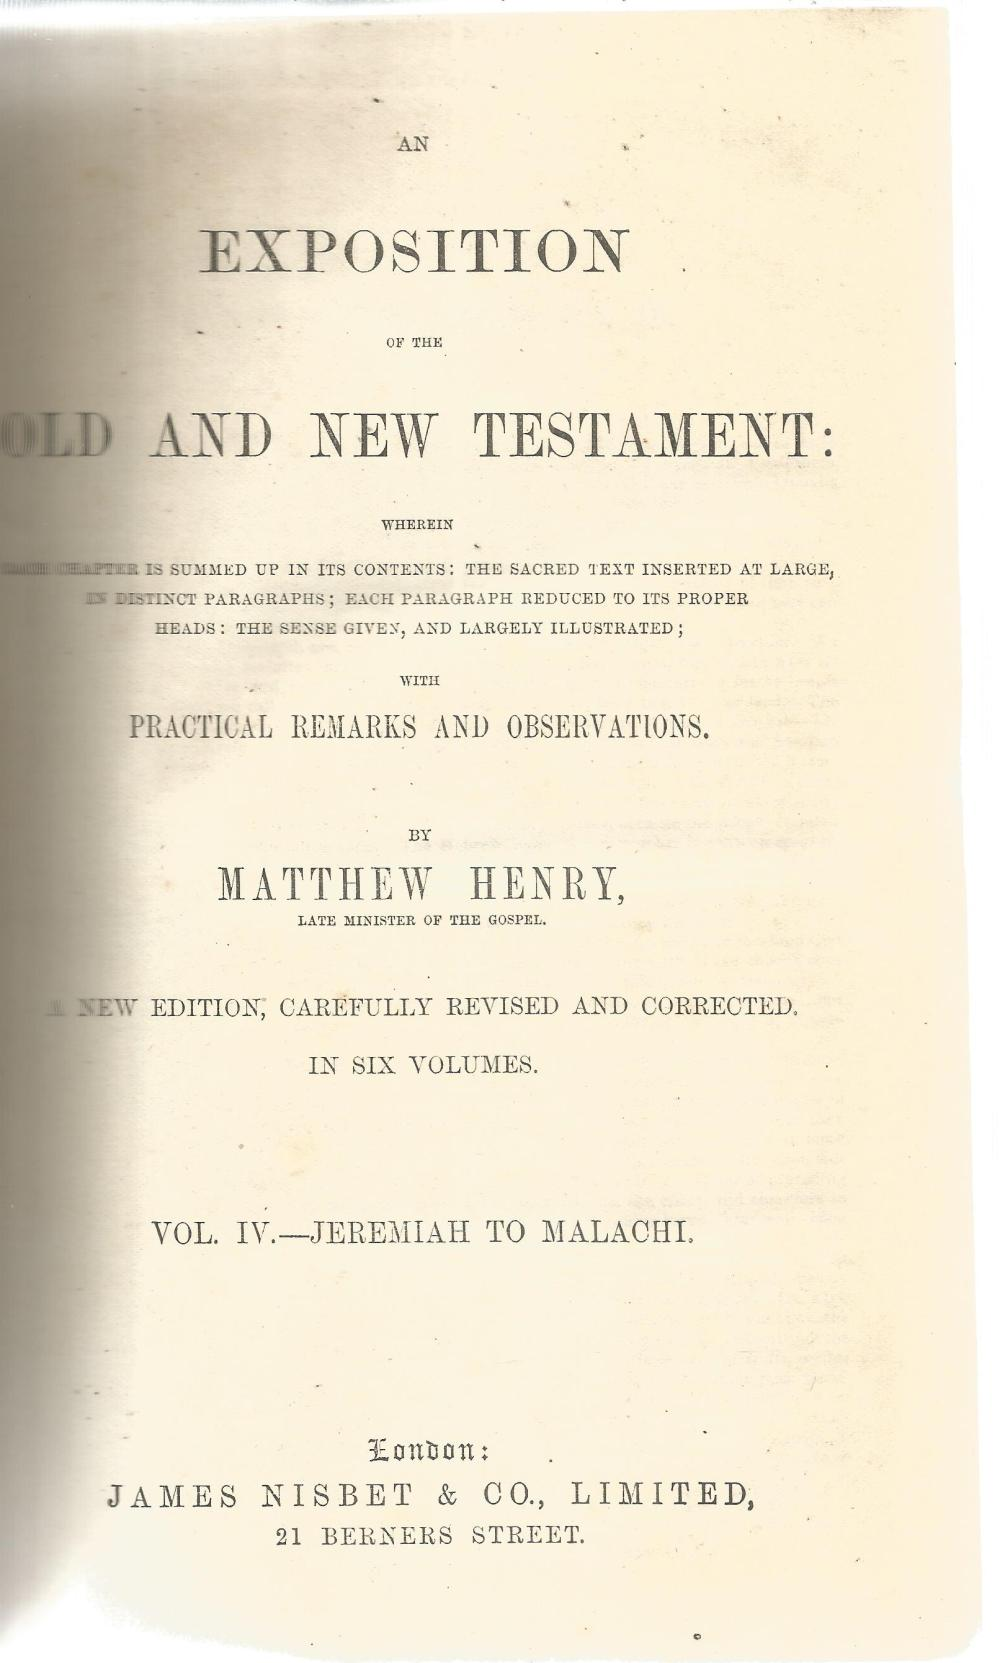 An Exposition of the Old and New Testament by Matthew Henry. Unsigned hardback book with no dust - Image 2 of 2